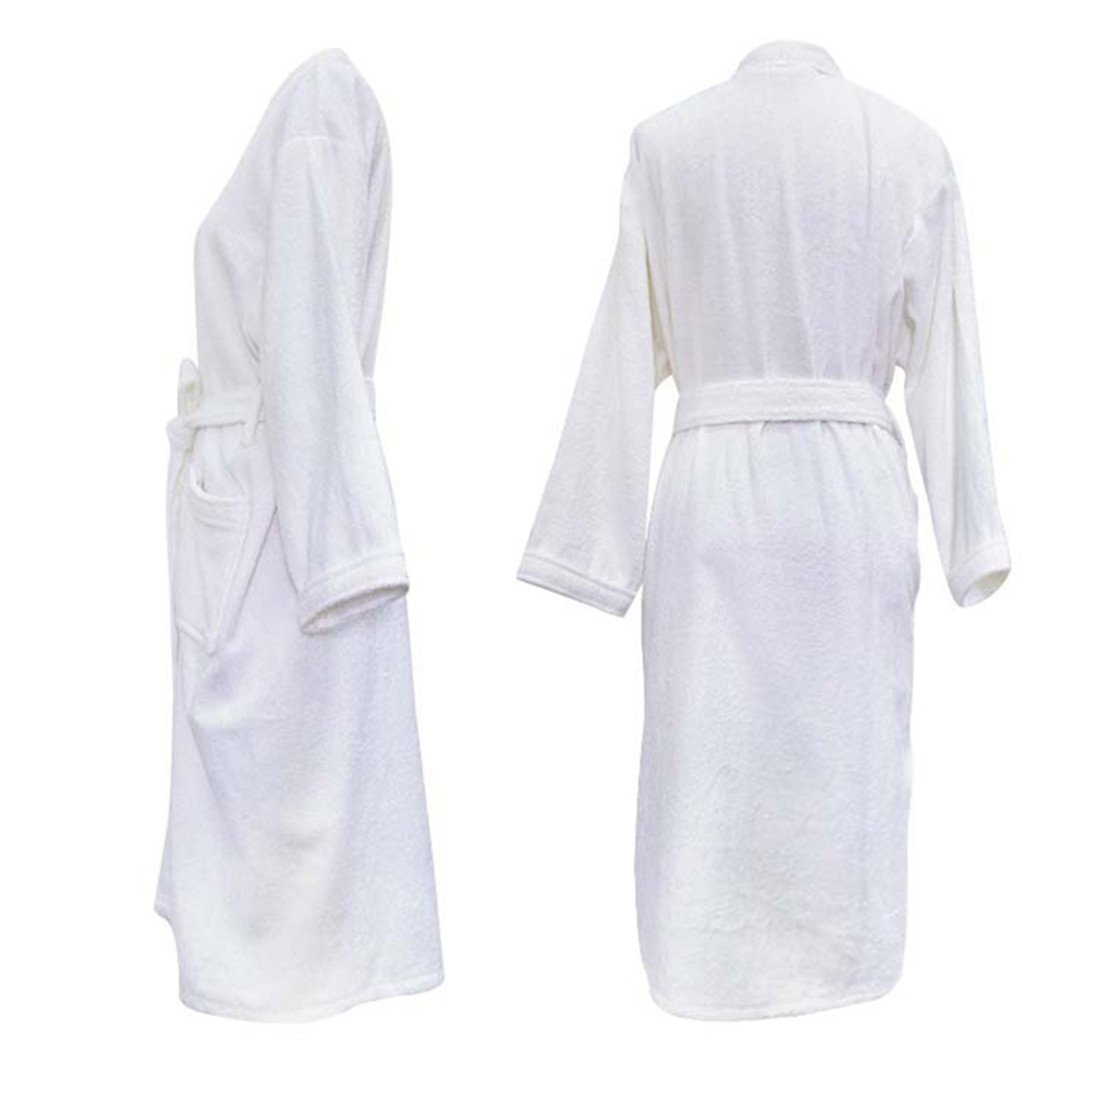 Unisex Towelling Robe 100% Cotton Terry Towel Bathrobe Dressing Gown Bath  Robe Perfect for Gym Shower Spa Hotel Robe Holiday Present or Christmas Gift   ... 668a60330